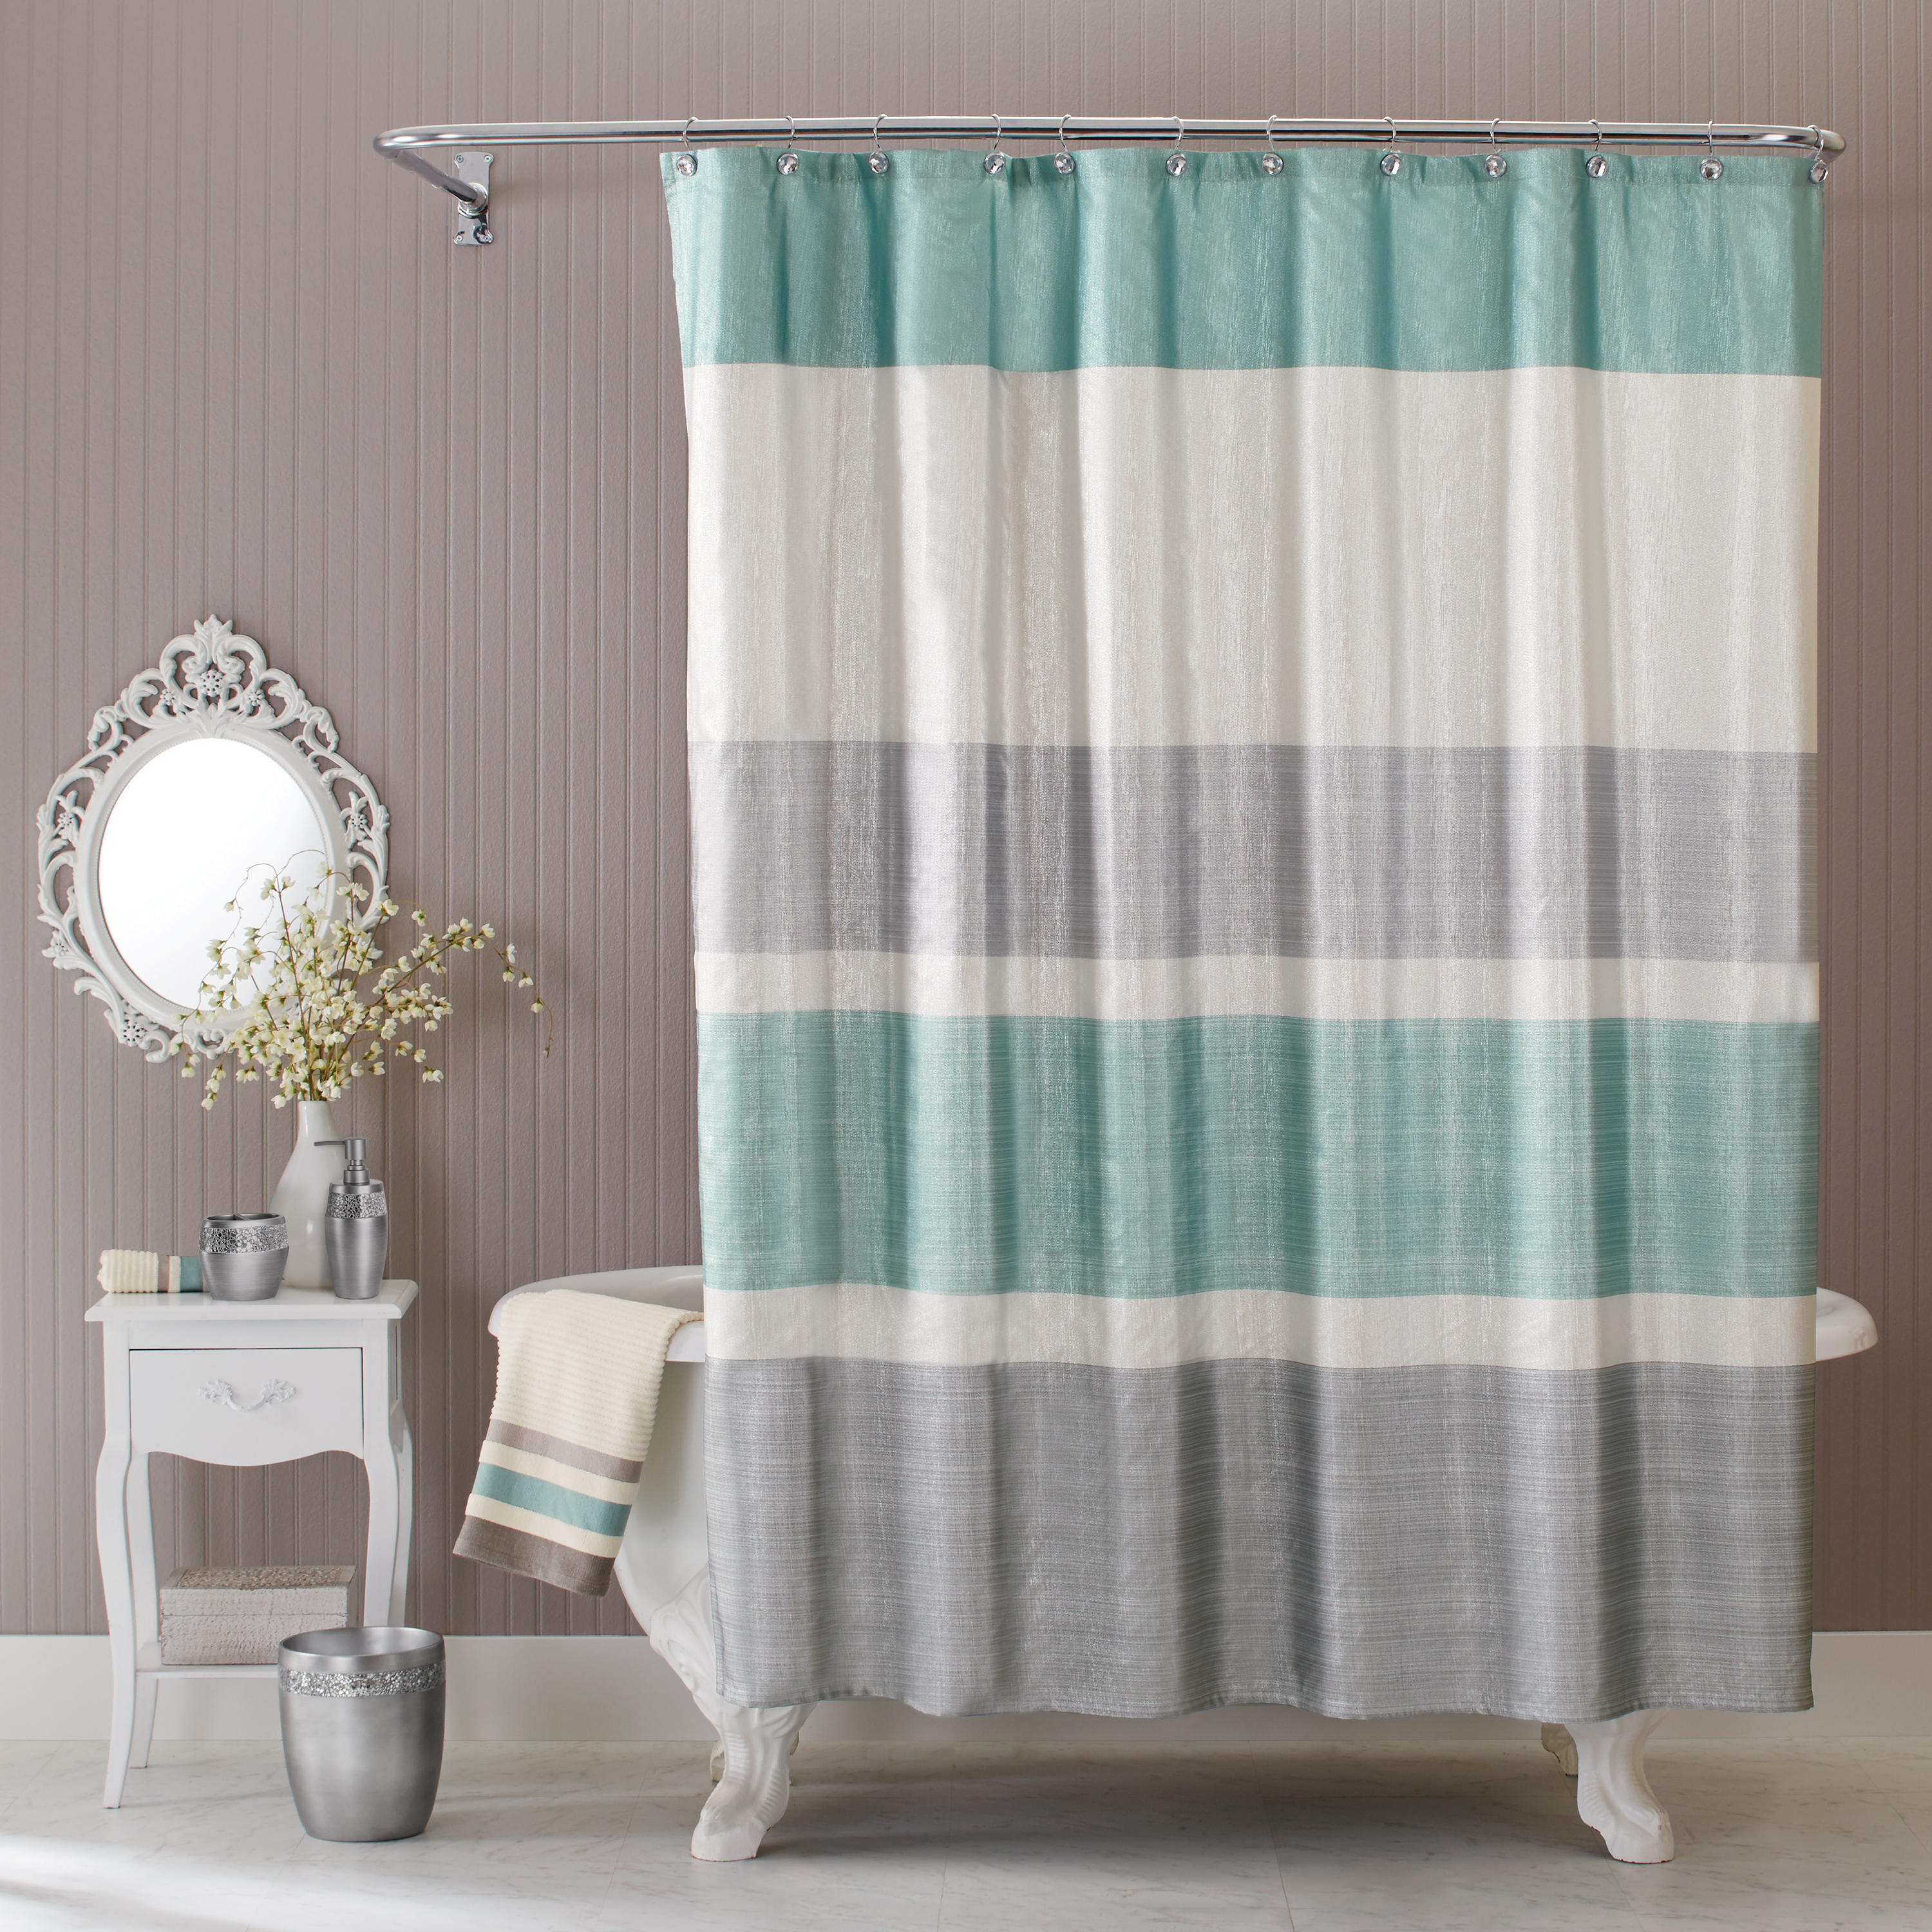 "Better Homes & Gardens Glimmer Shower Curtain 72"" x 72"""